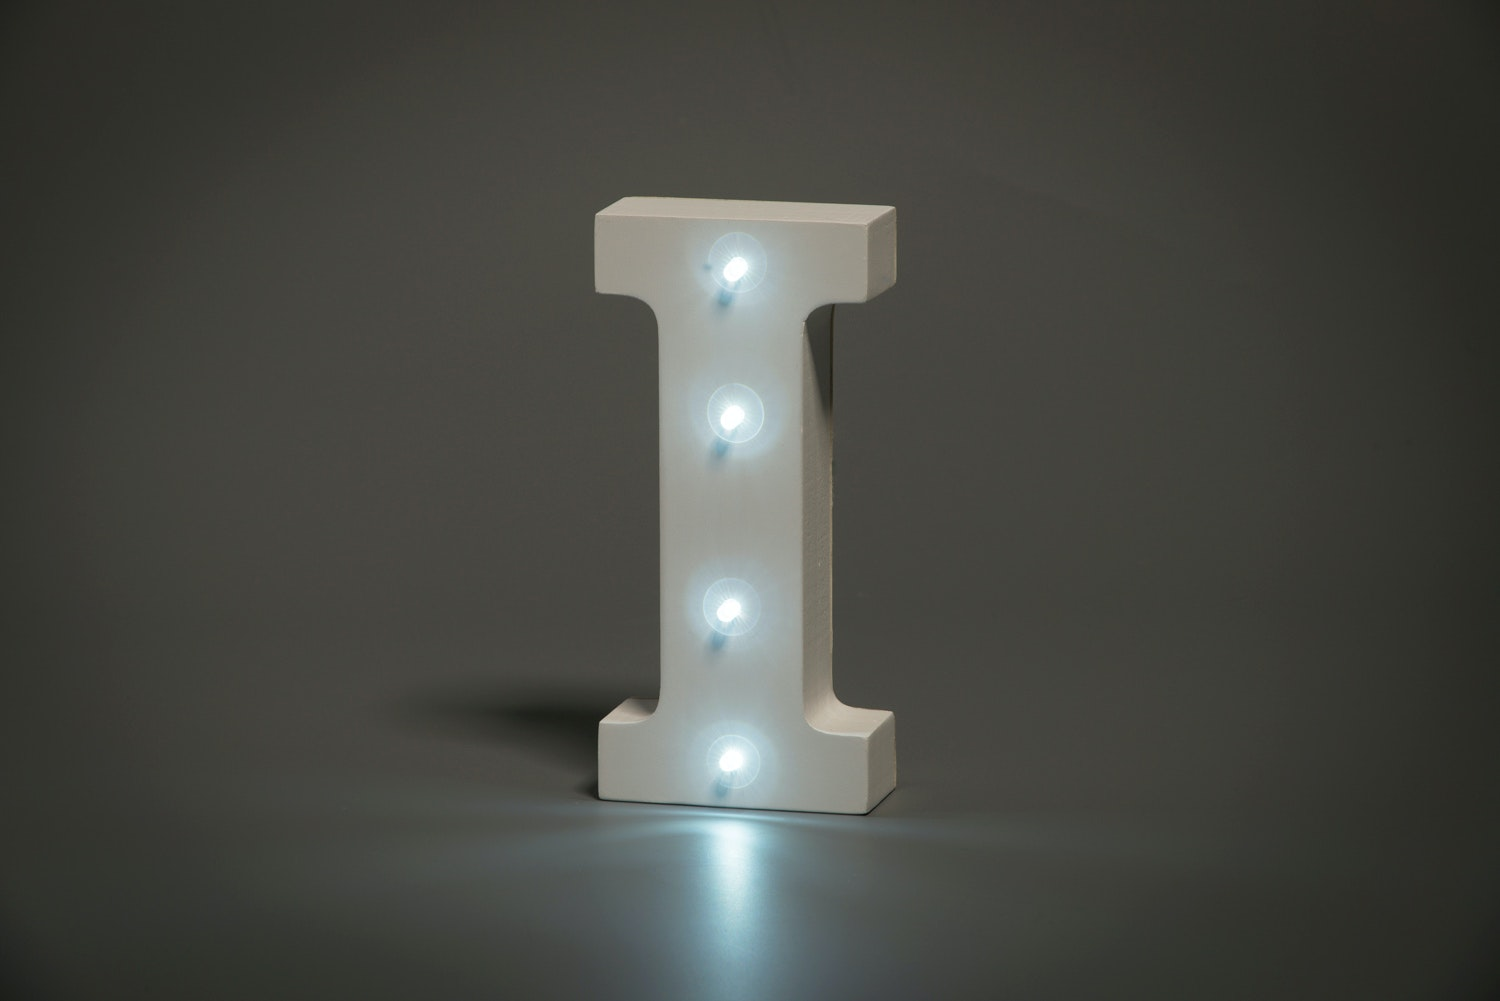 Up In Lights Illuminated Letter | I